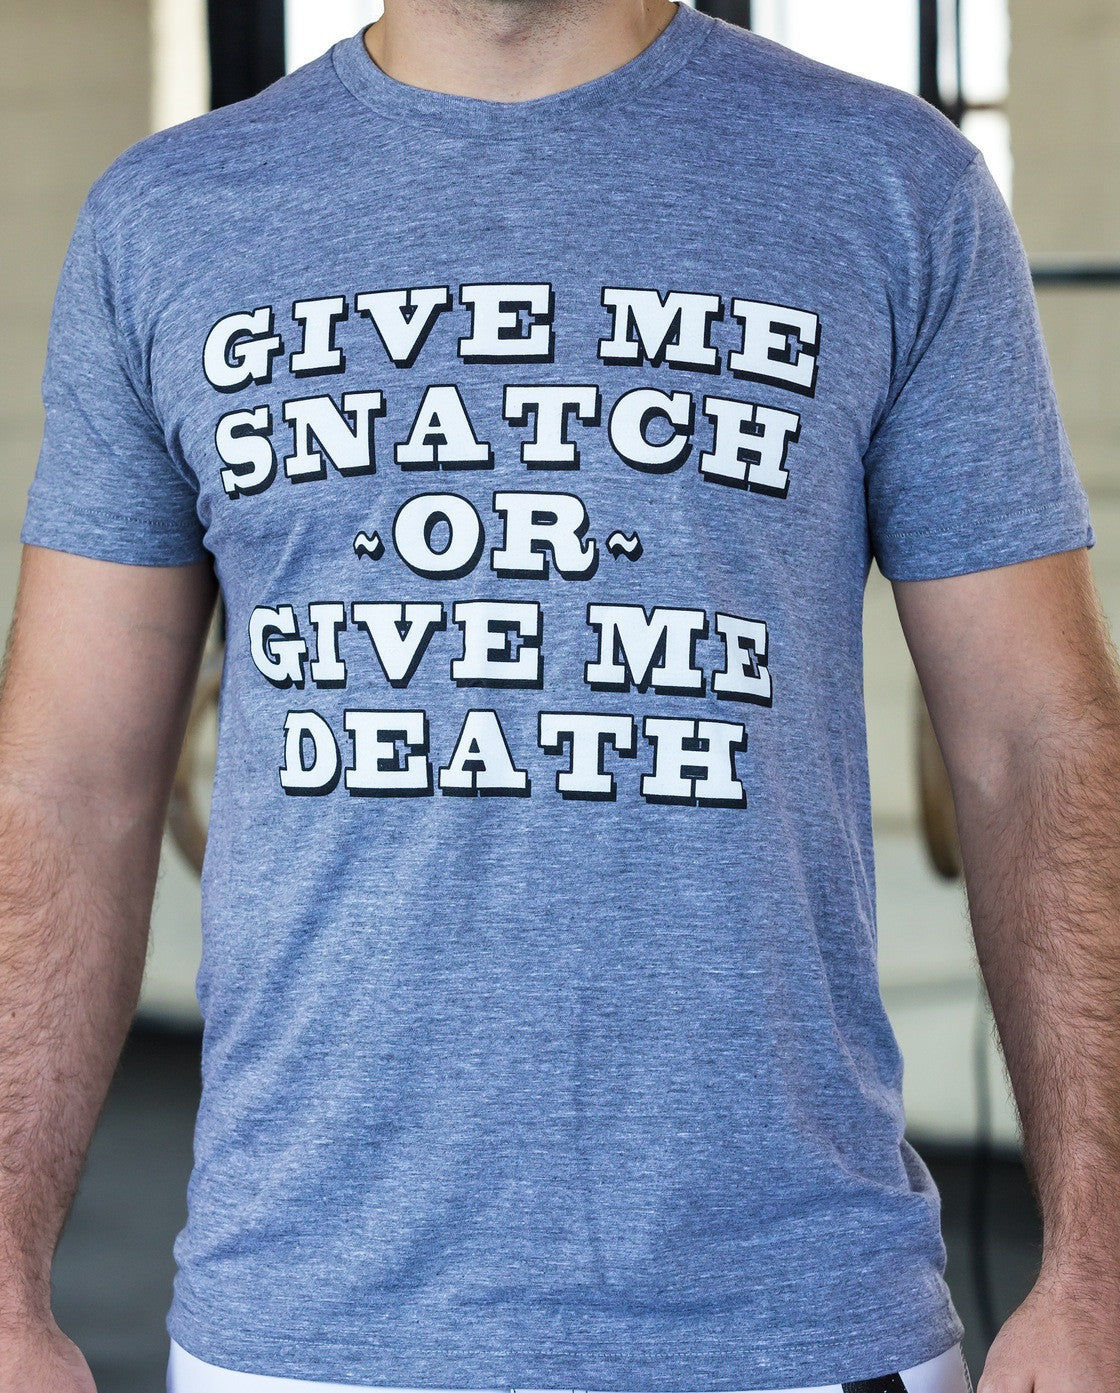 GIVE ME SNATCH/DEATH T-Shirt